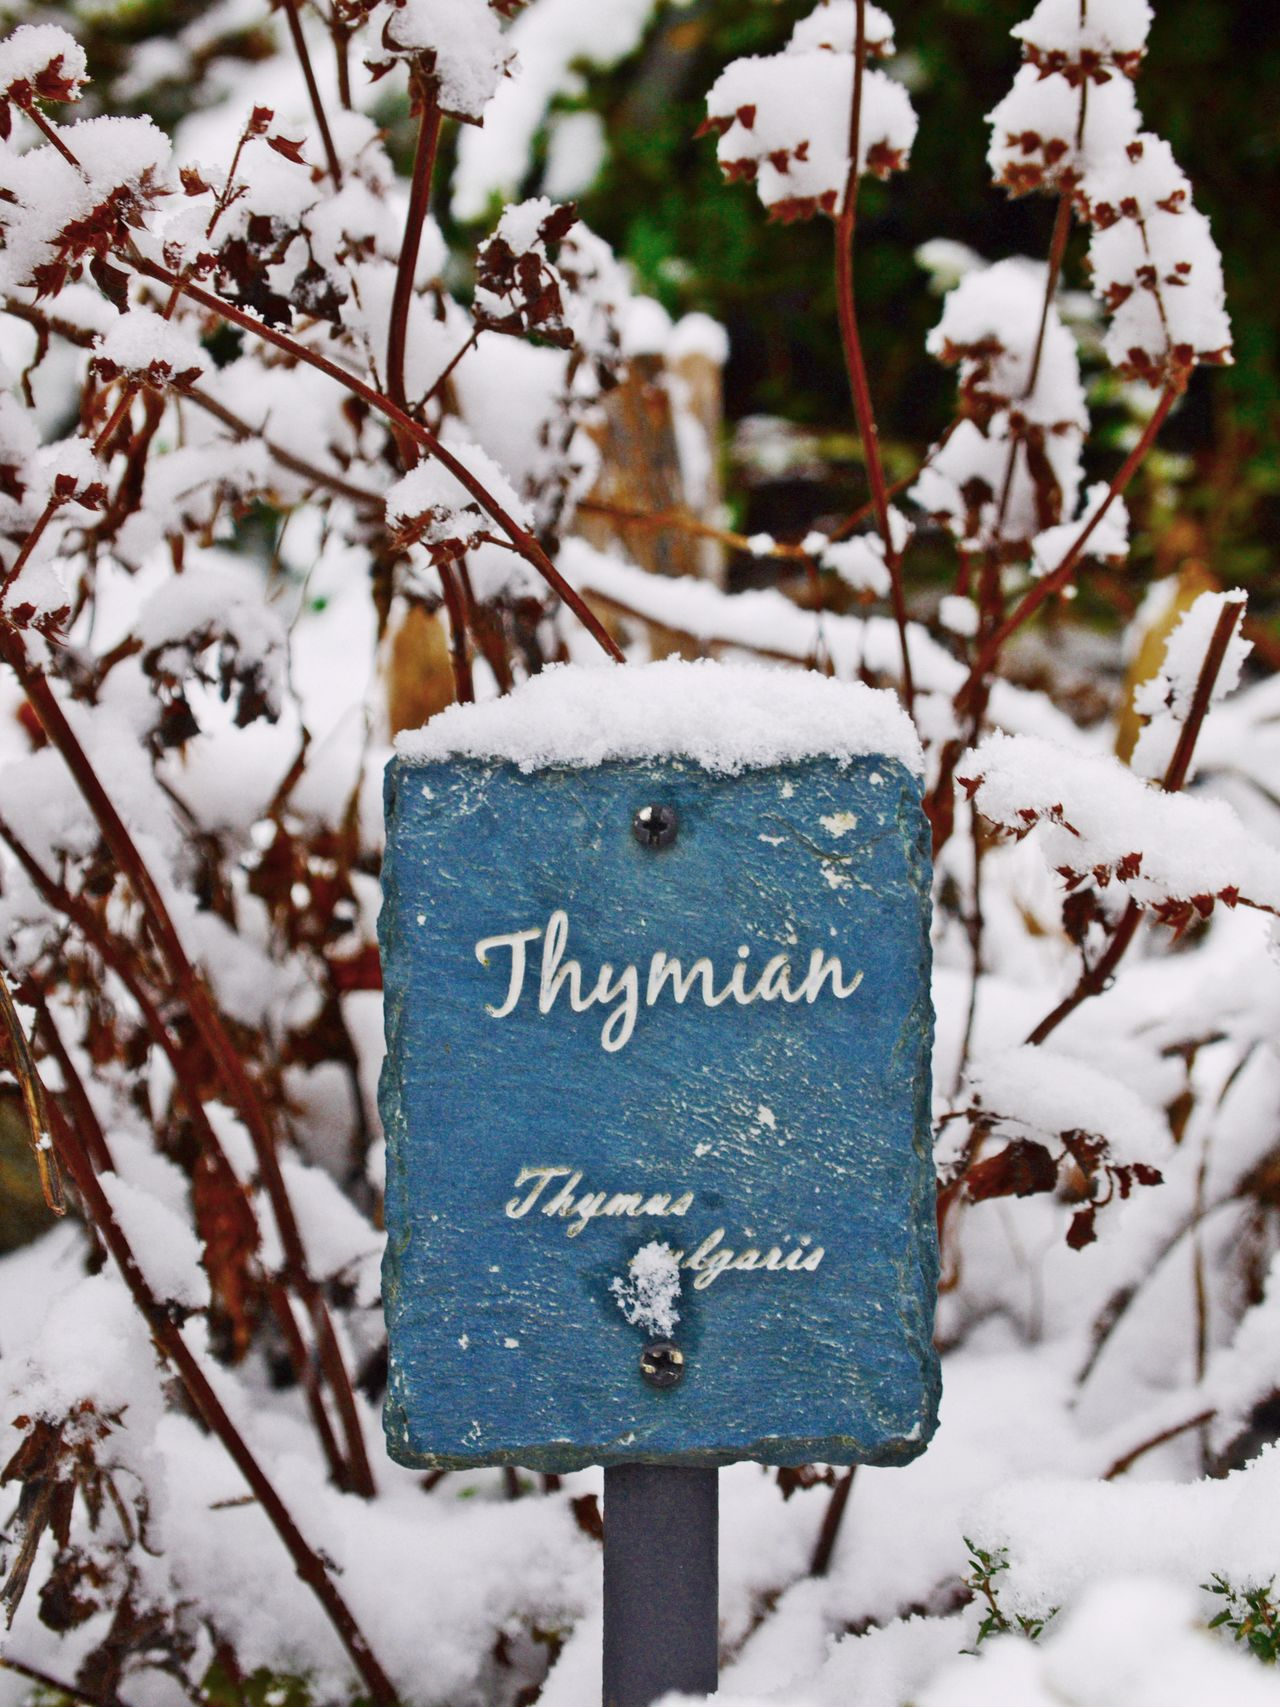 Close-up Cold Temperature Day Focus On Foreground Herbal Bed Nature No People Outdoors Signboard Snow Text Thymian Tree Weather Winter